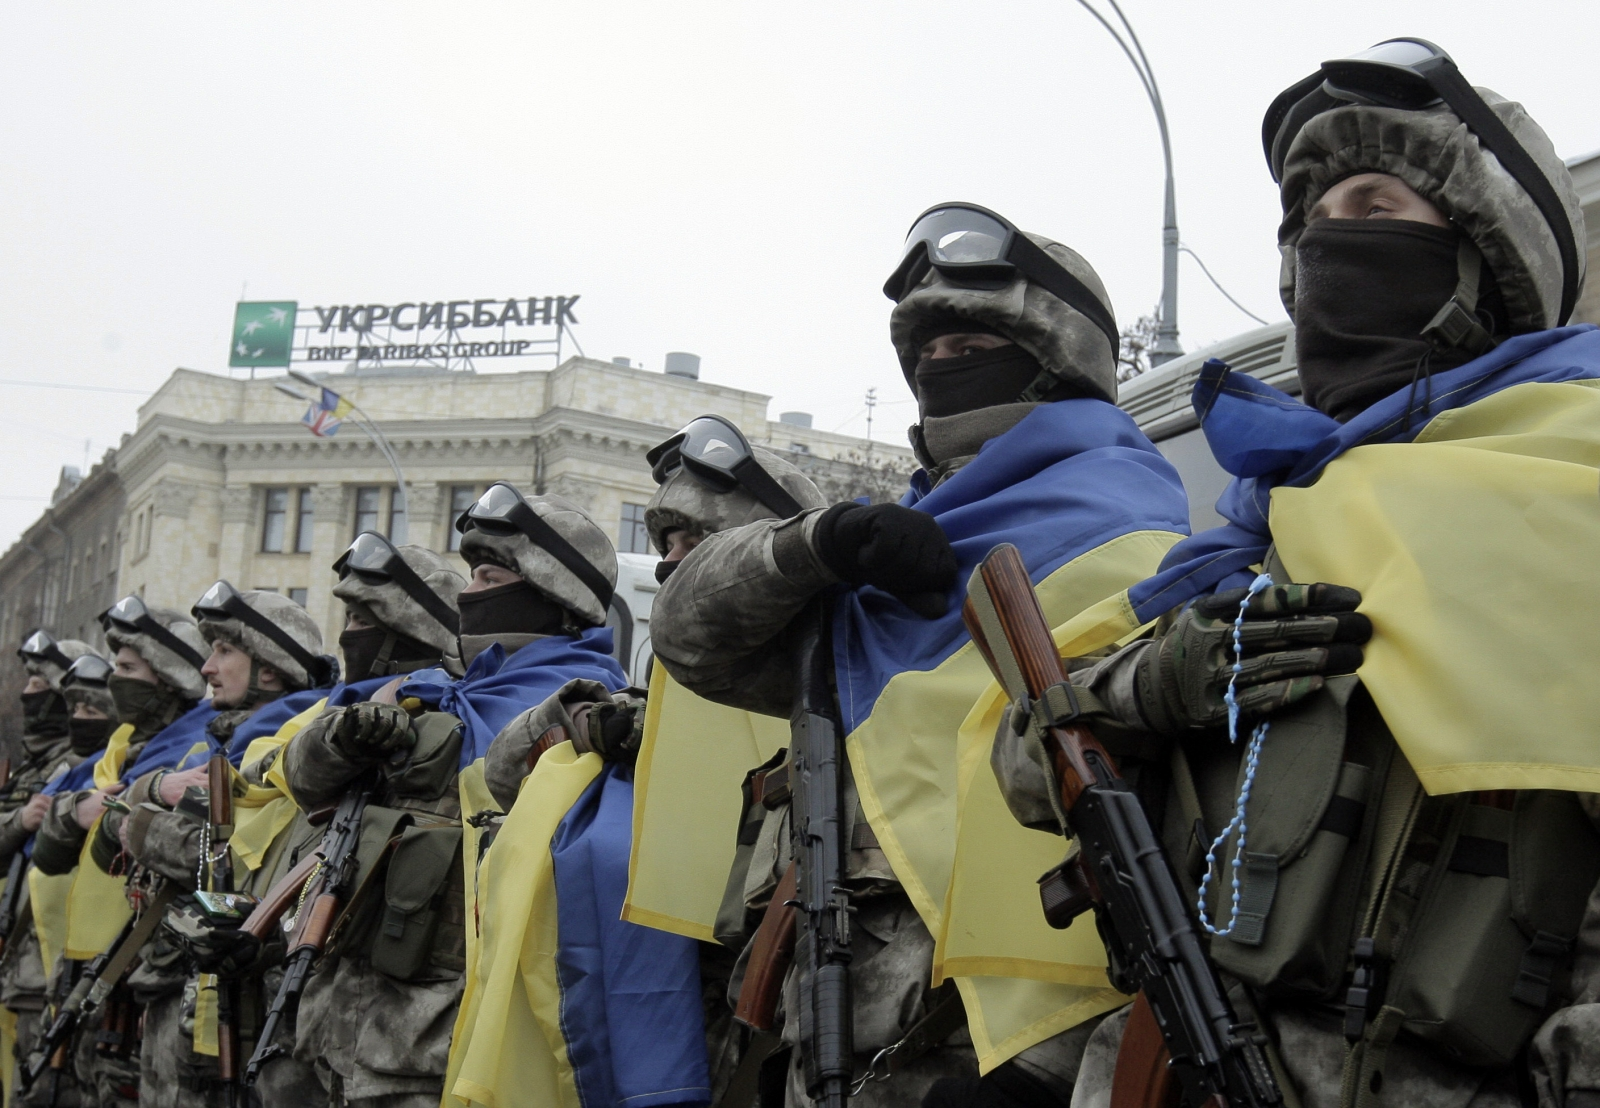 Ukraine Kharkiv bombers trained in Russia claims Kiev security official